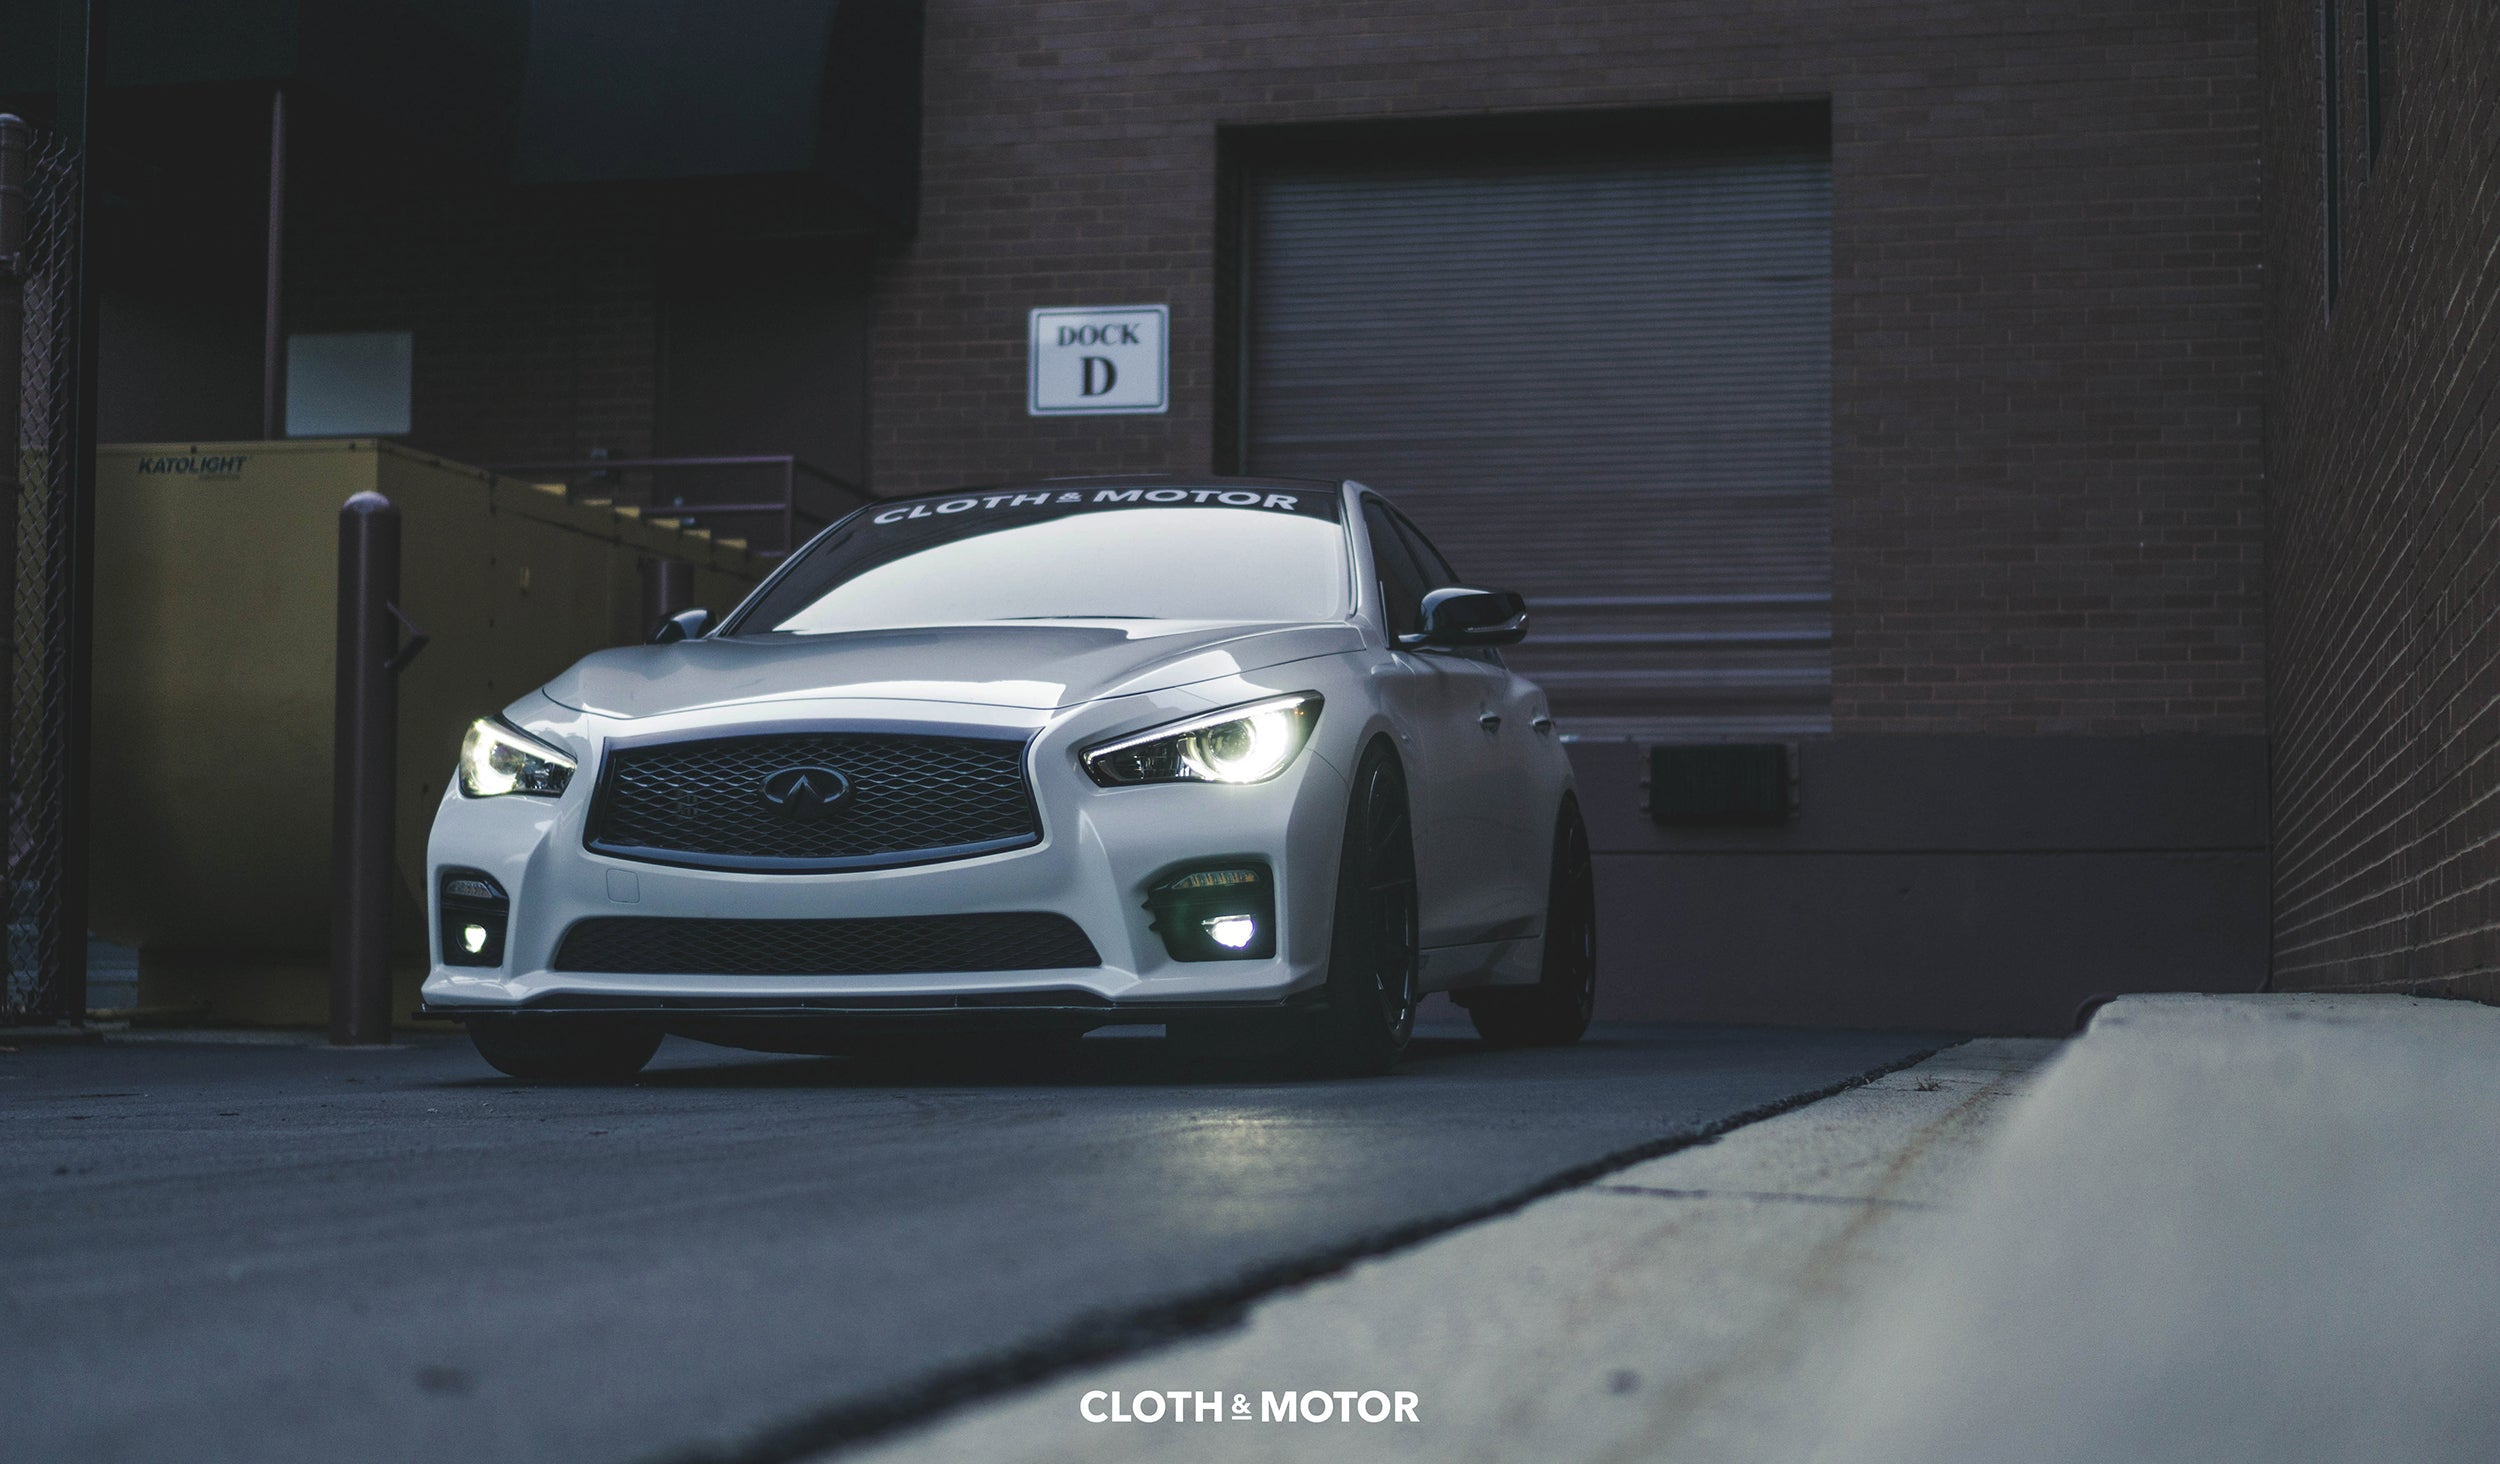 Infiniti Q50 owner @mike.repps on Instagram